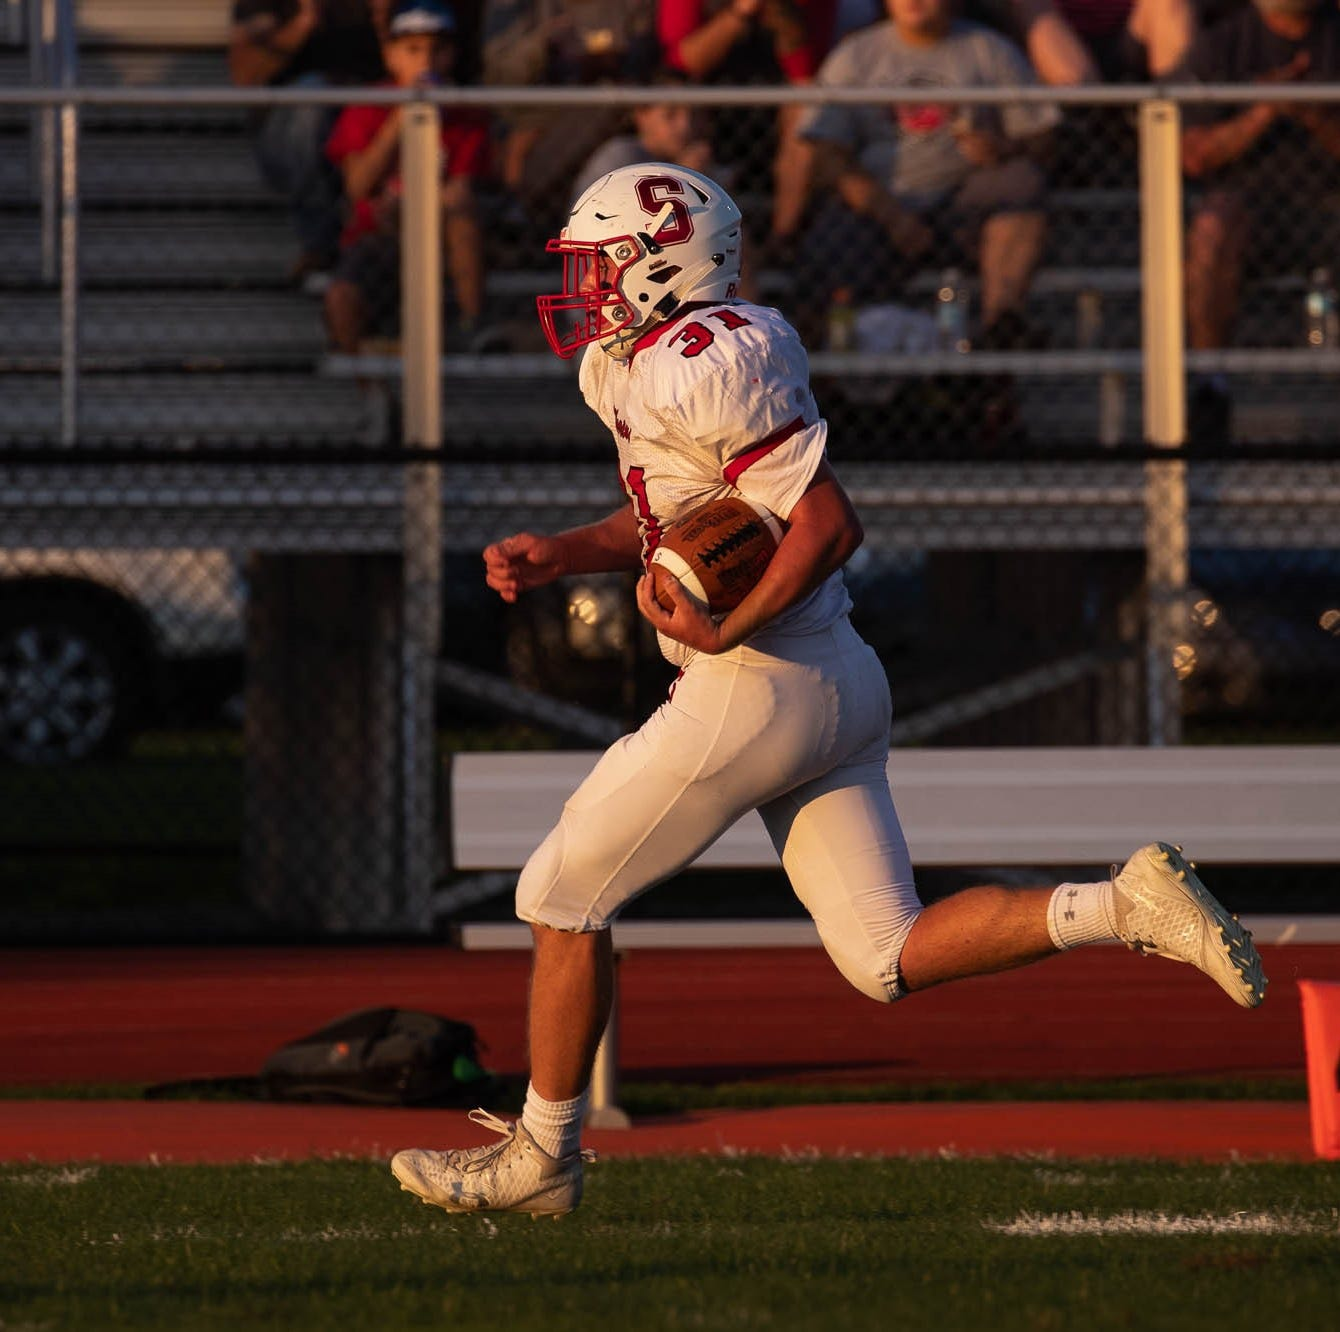 Live updates: District 3 high school football games Aug. 31 and Sept. 1